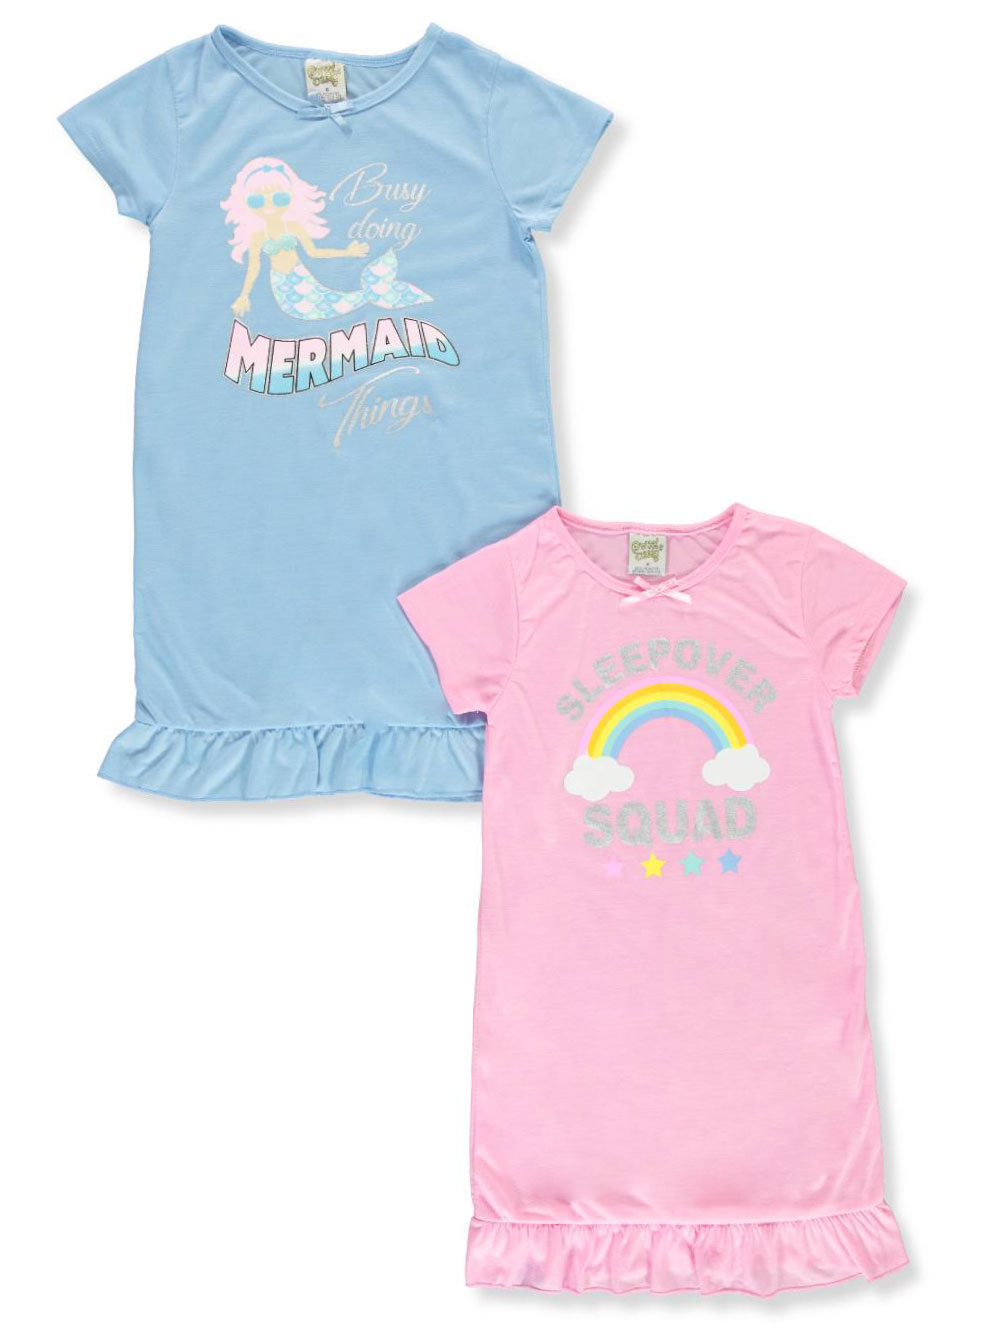 Sweet n Sassy Nightgown Girls' 2-Pack Nightgowns